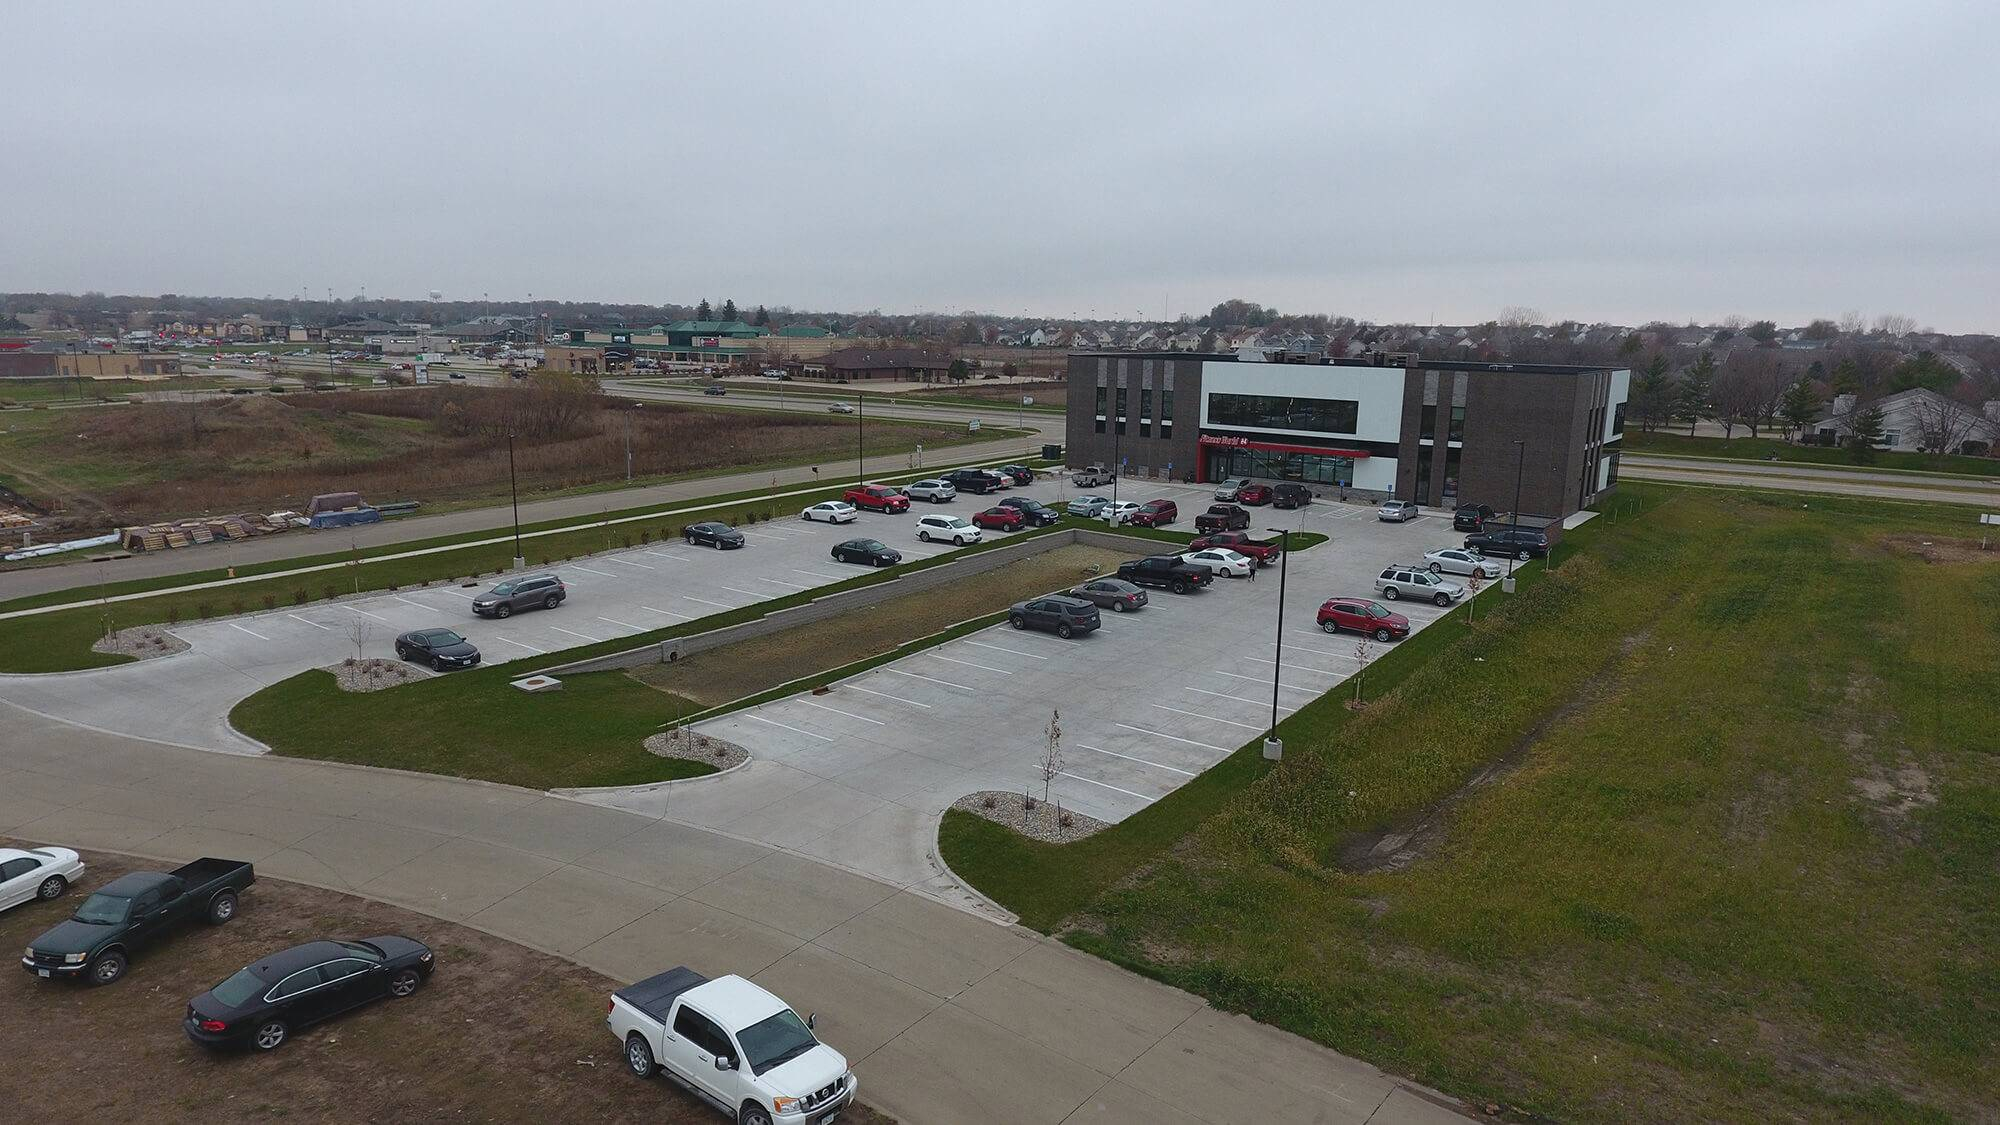 An aerial view of the grading project done at Fitness World in Ankeny, IA.